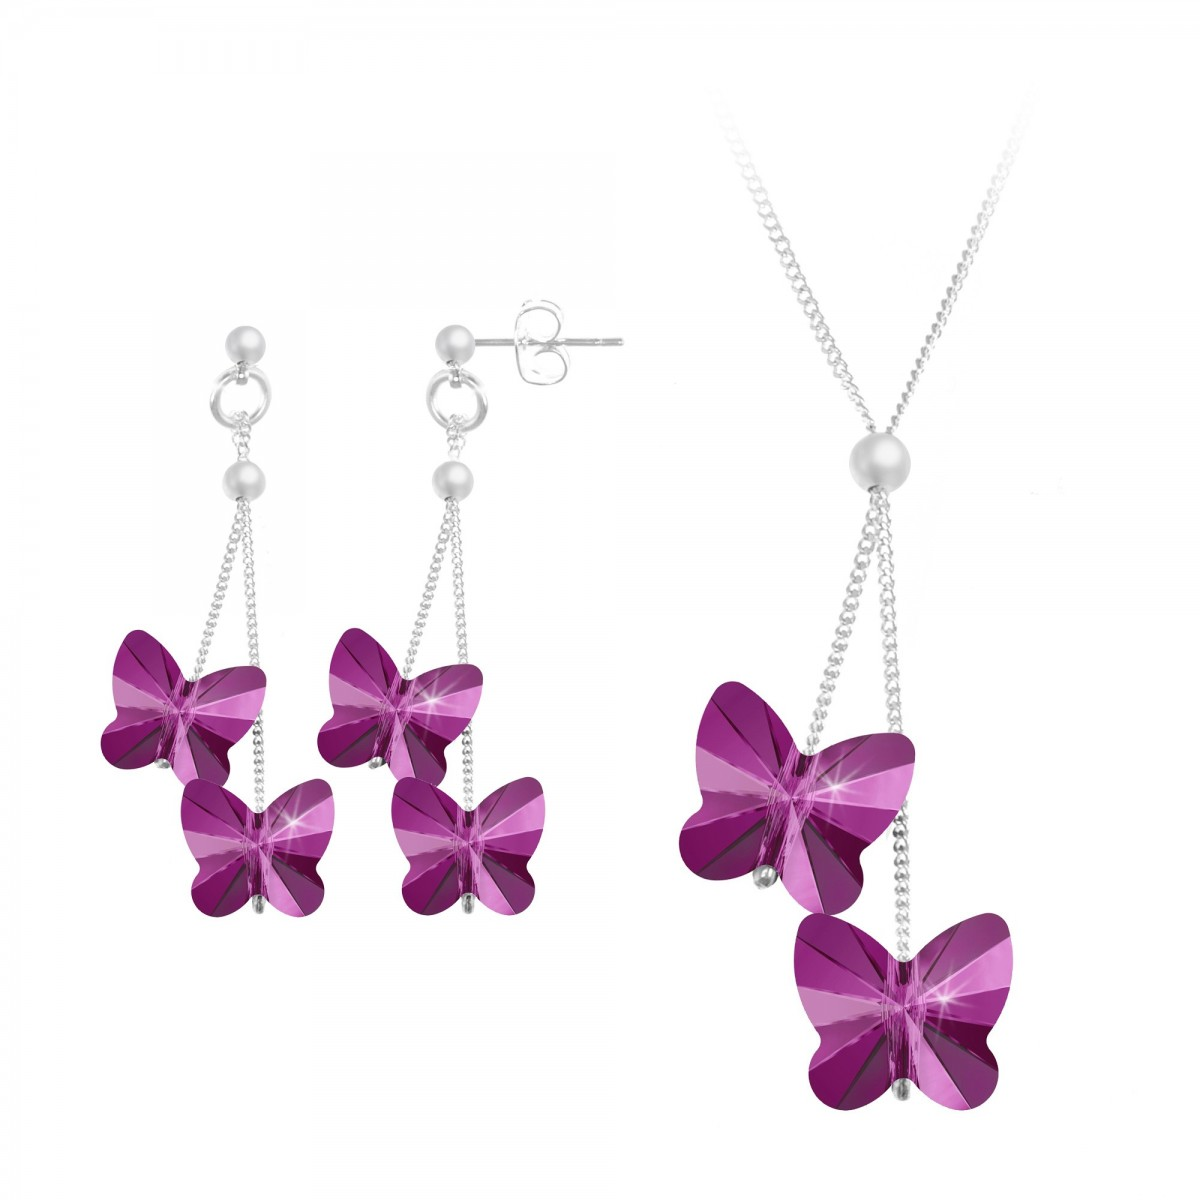 Parure collier et boucles d'oreilles papillons roses So Charm made with Crystal from Swarovski